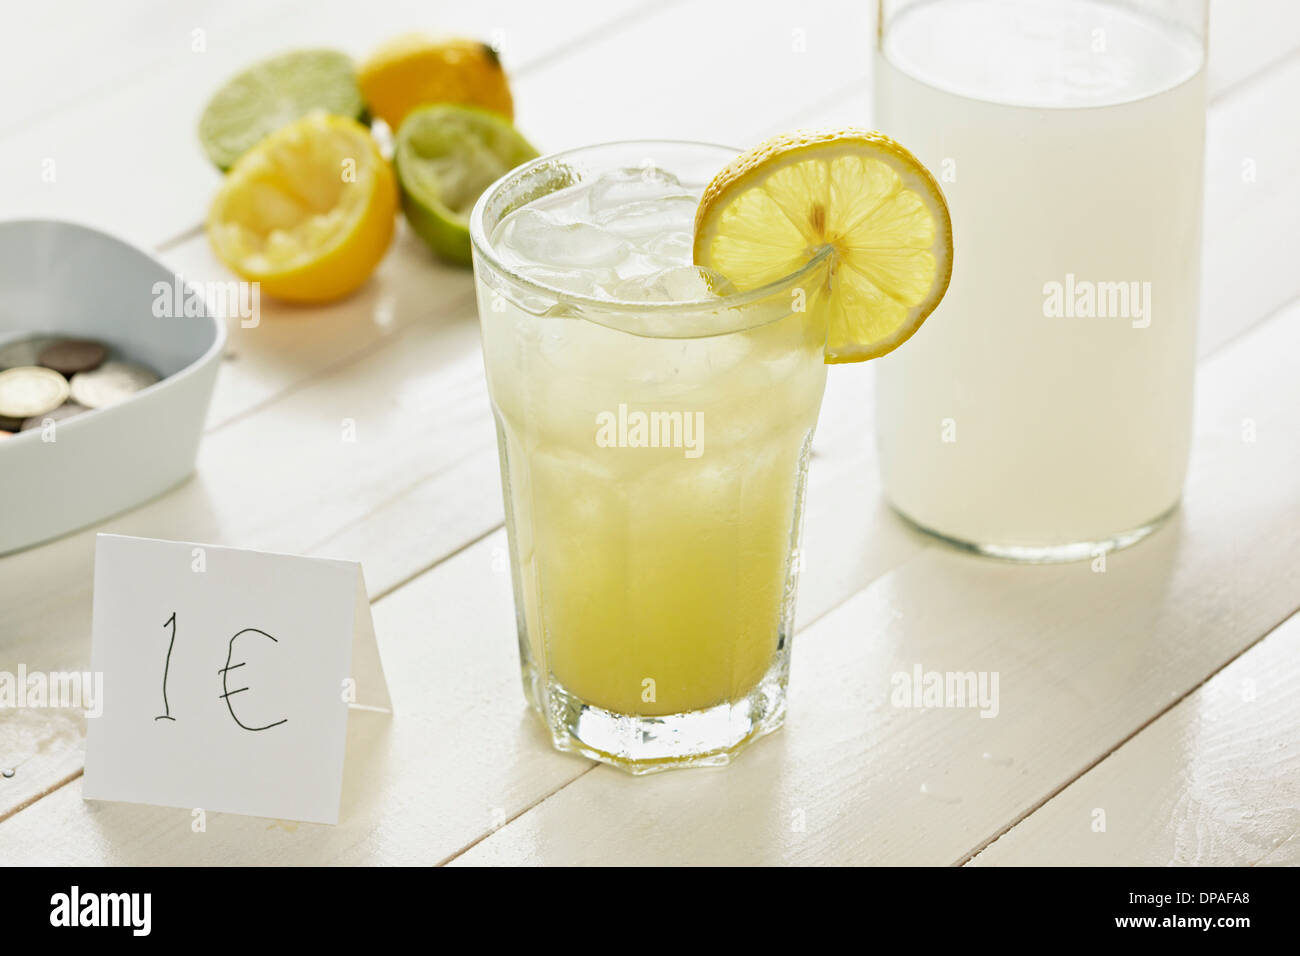 Glass of homemade lemonade with slice of lemon with 1 Euro sign - Stock Image